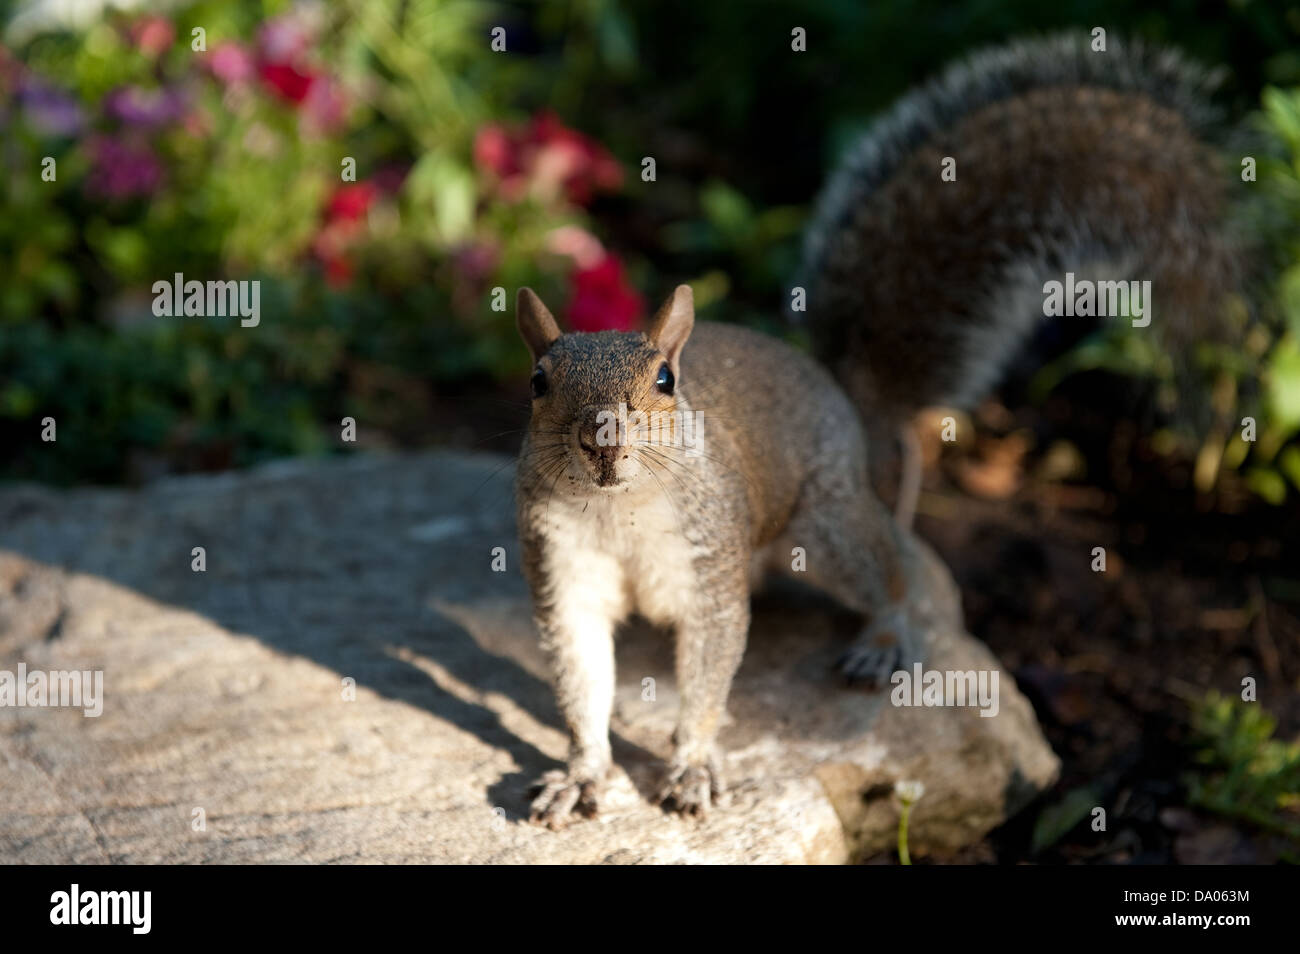 Squirrel, The Company's Garden, Cape Town, South Africa - Stock Image